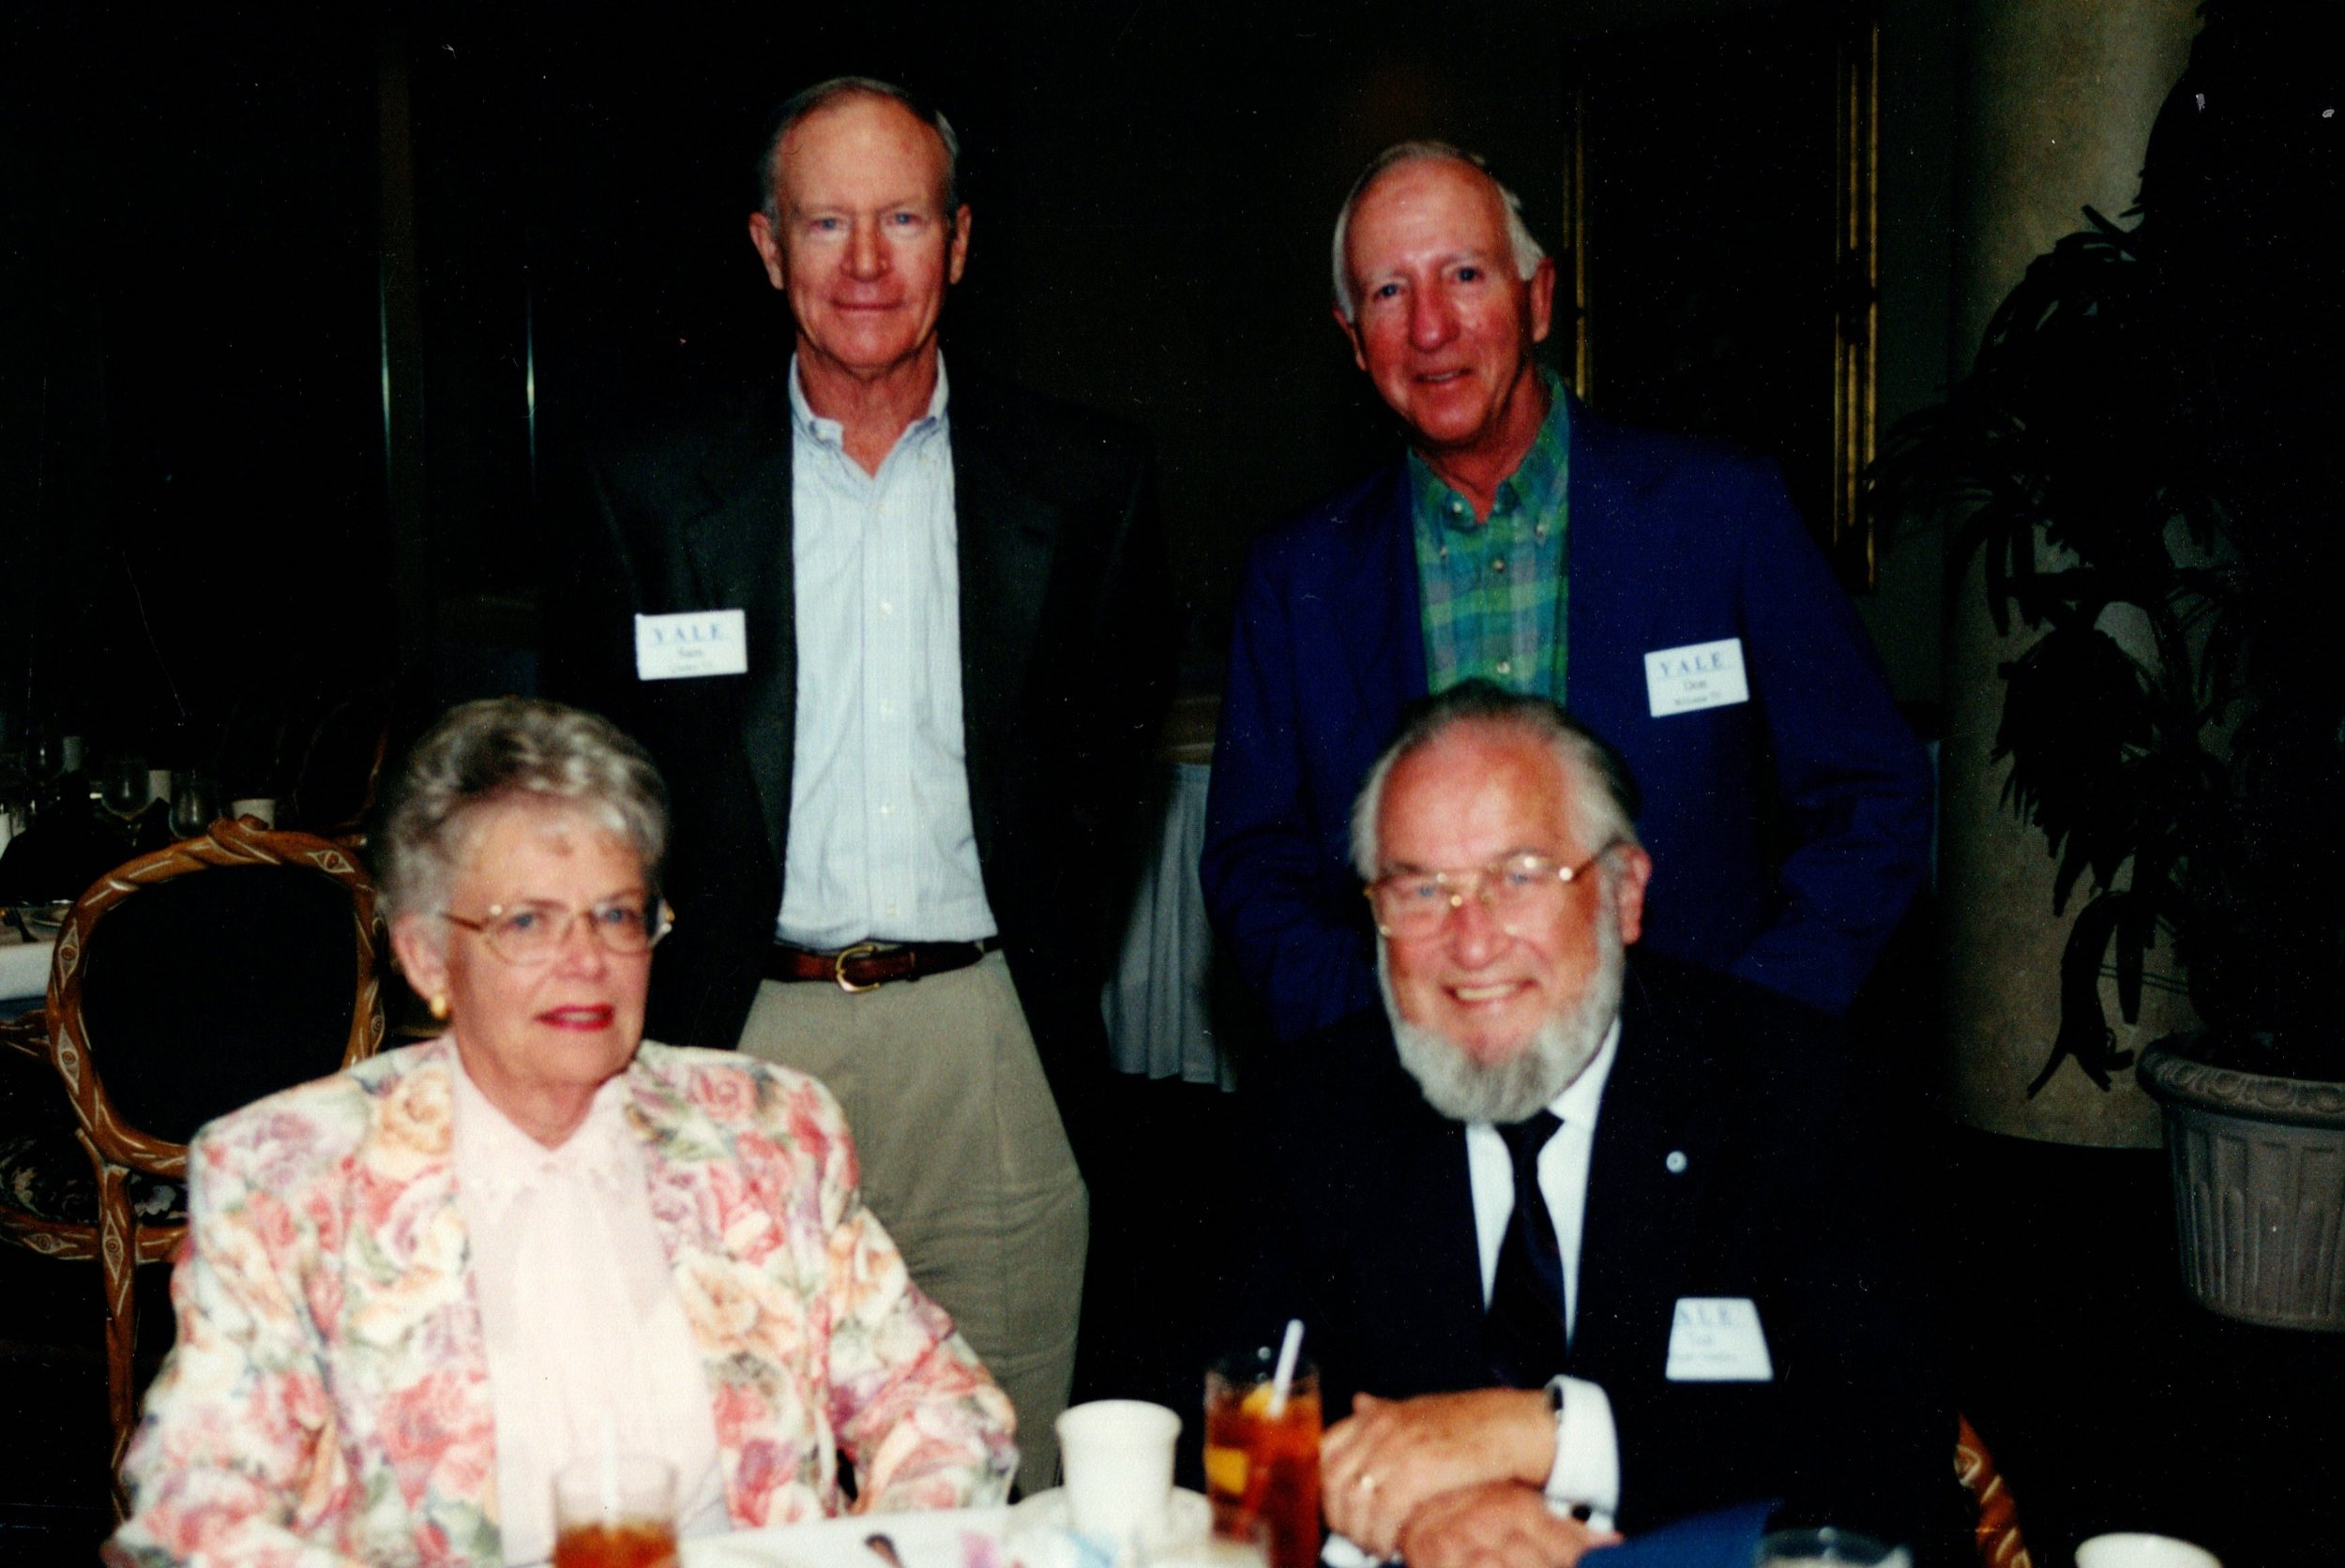 SAM COOLEY '53, DON WILLIAMS '53, CAROL AND TED GAULT 54'MDIV